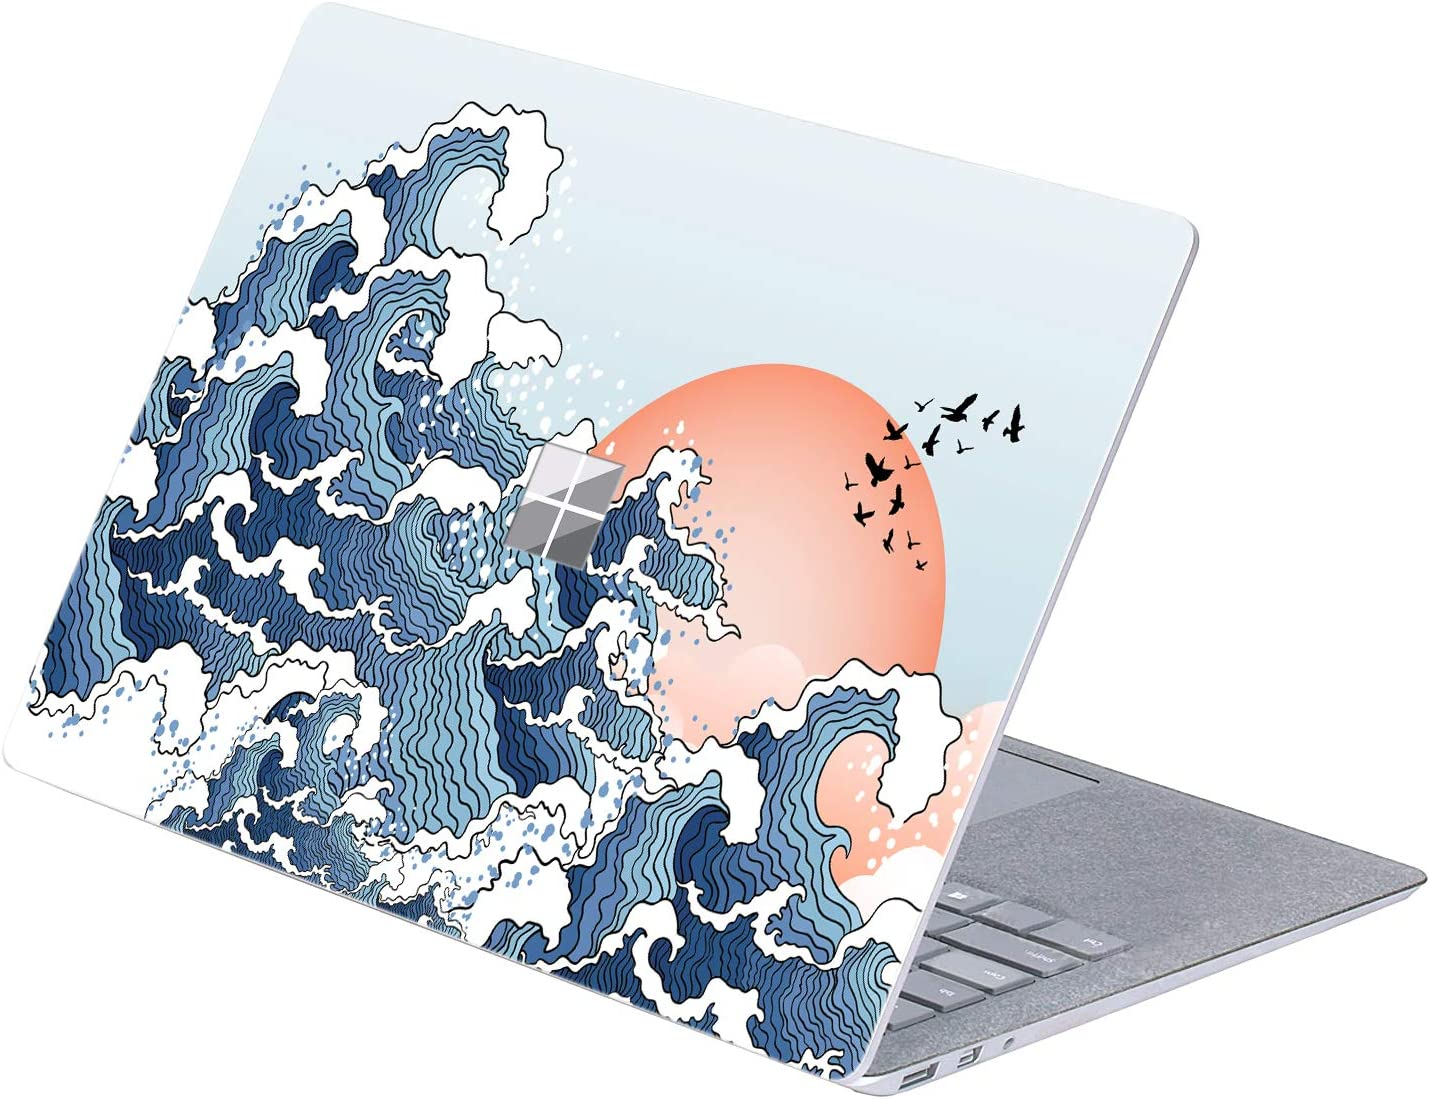 "MasiBloom Top Side Laptop Sticker Decal for 13"" 13.5 inch Microsoft Surface Laptop 3 & 2 & 1 (2019/18/17 Released), Not Compatible with Surface Book (Wave and Setting Sun)"